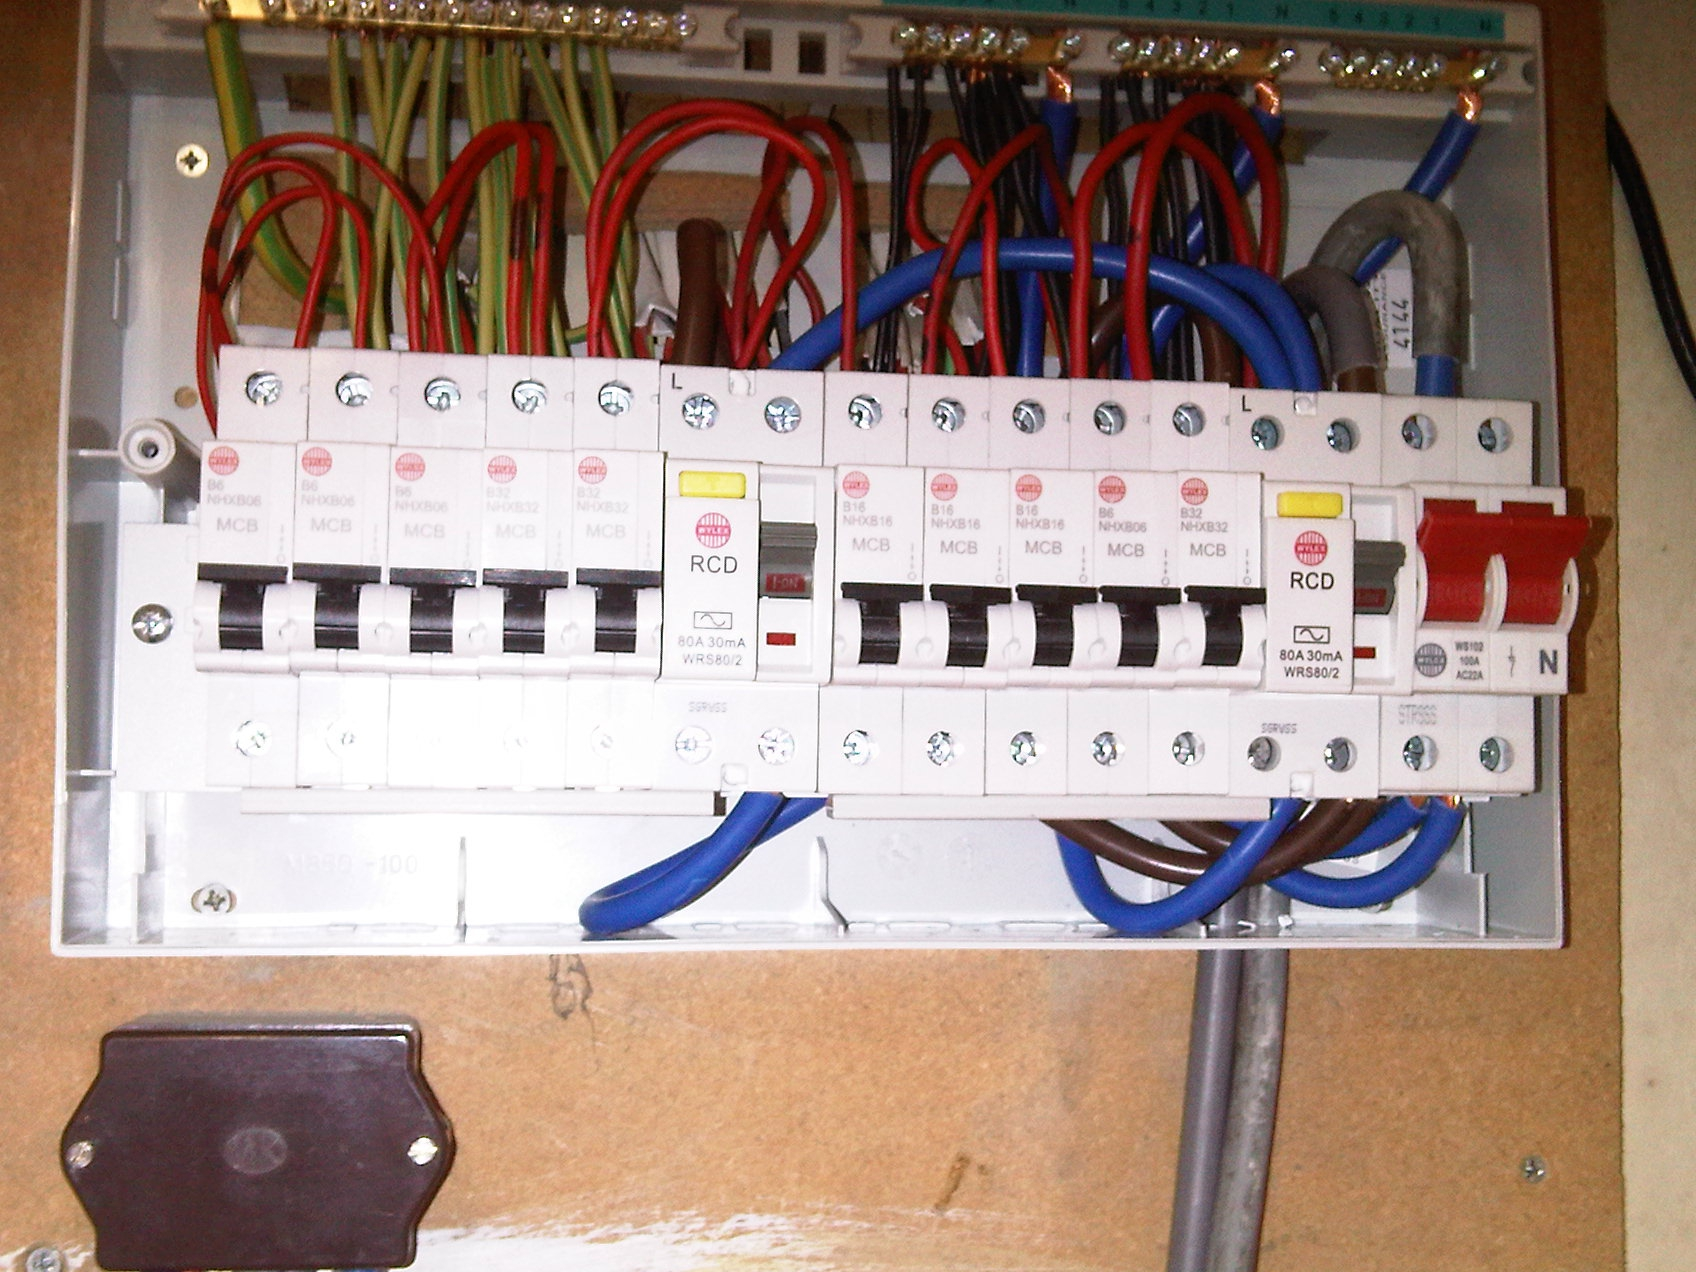 Main Fuse Box Simple Guide About Wiring Diagram Kia Bongo Mk Repair Centre Notices News Rh Mkrepaircentre Co Uk Car